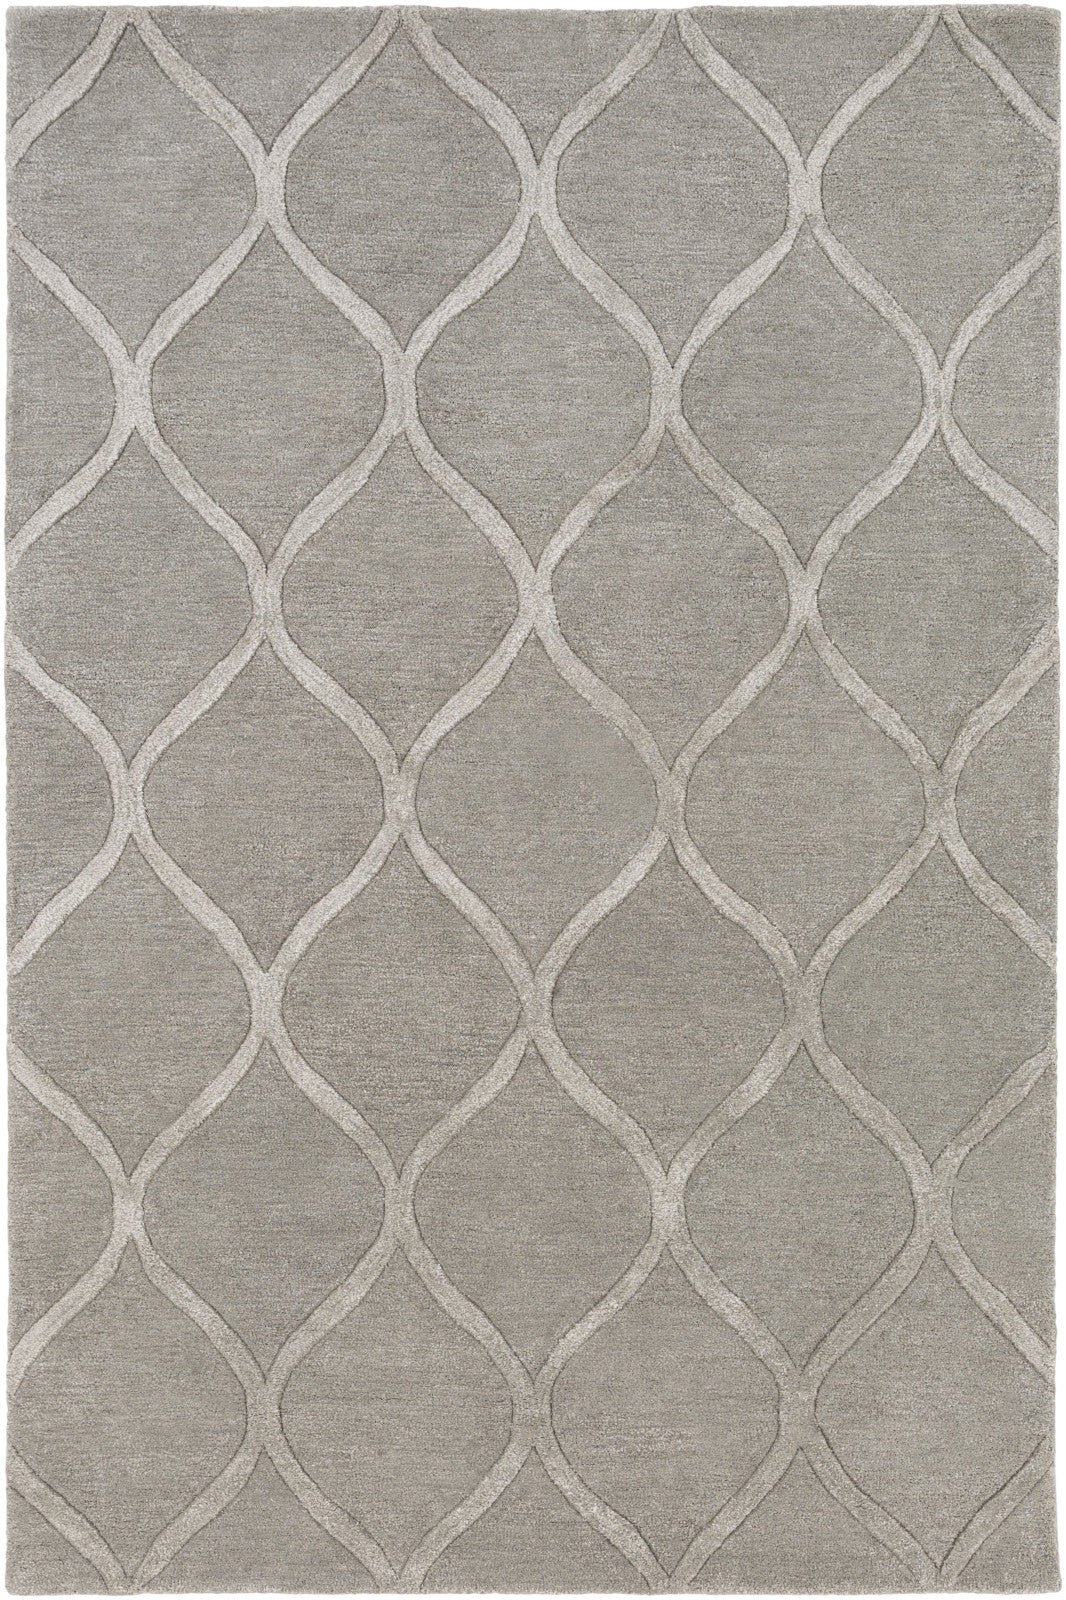 Artistic Weavers Urban Cassidy Light Gray Area Rug main image